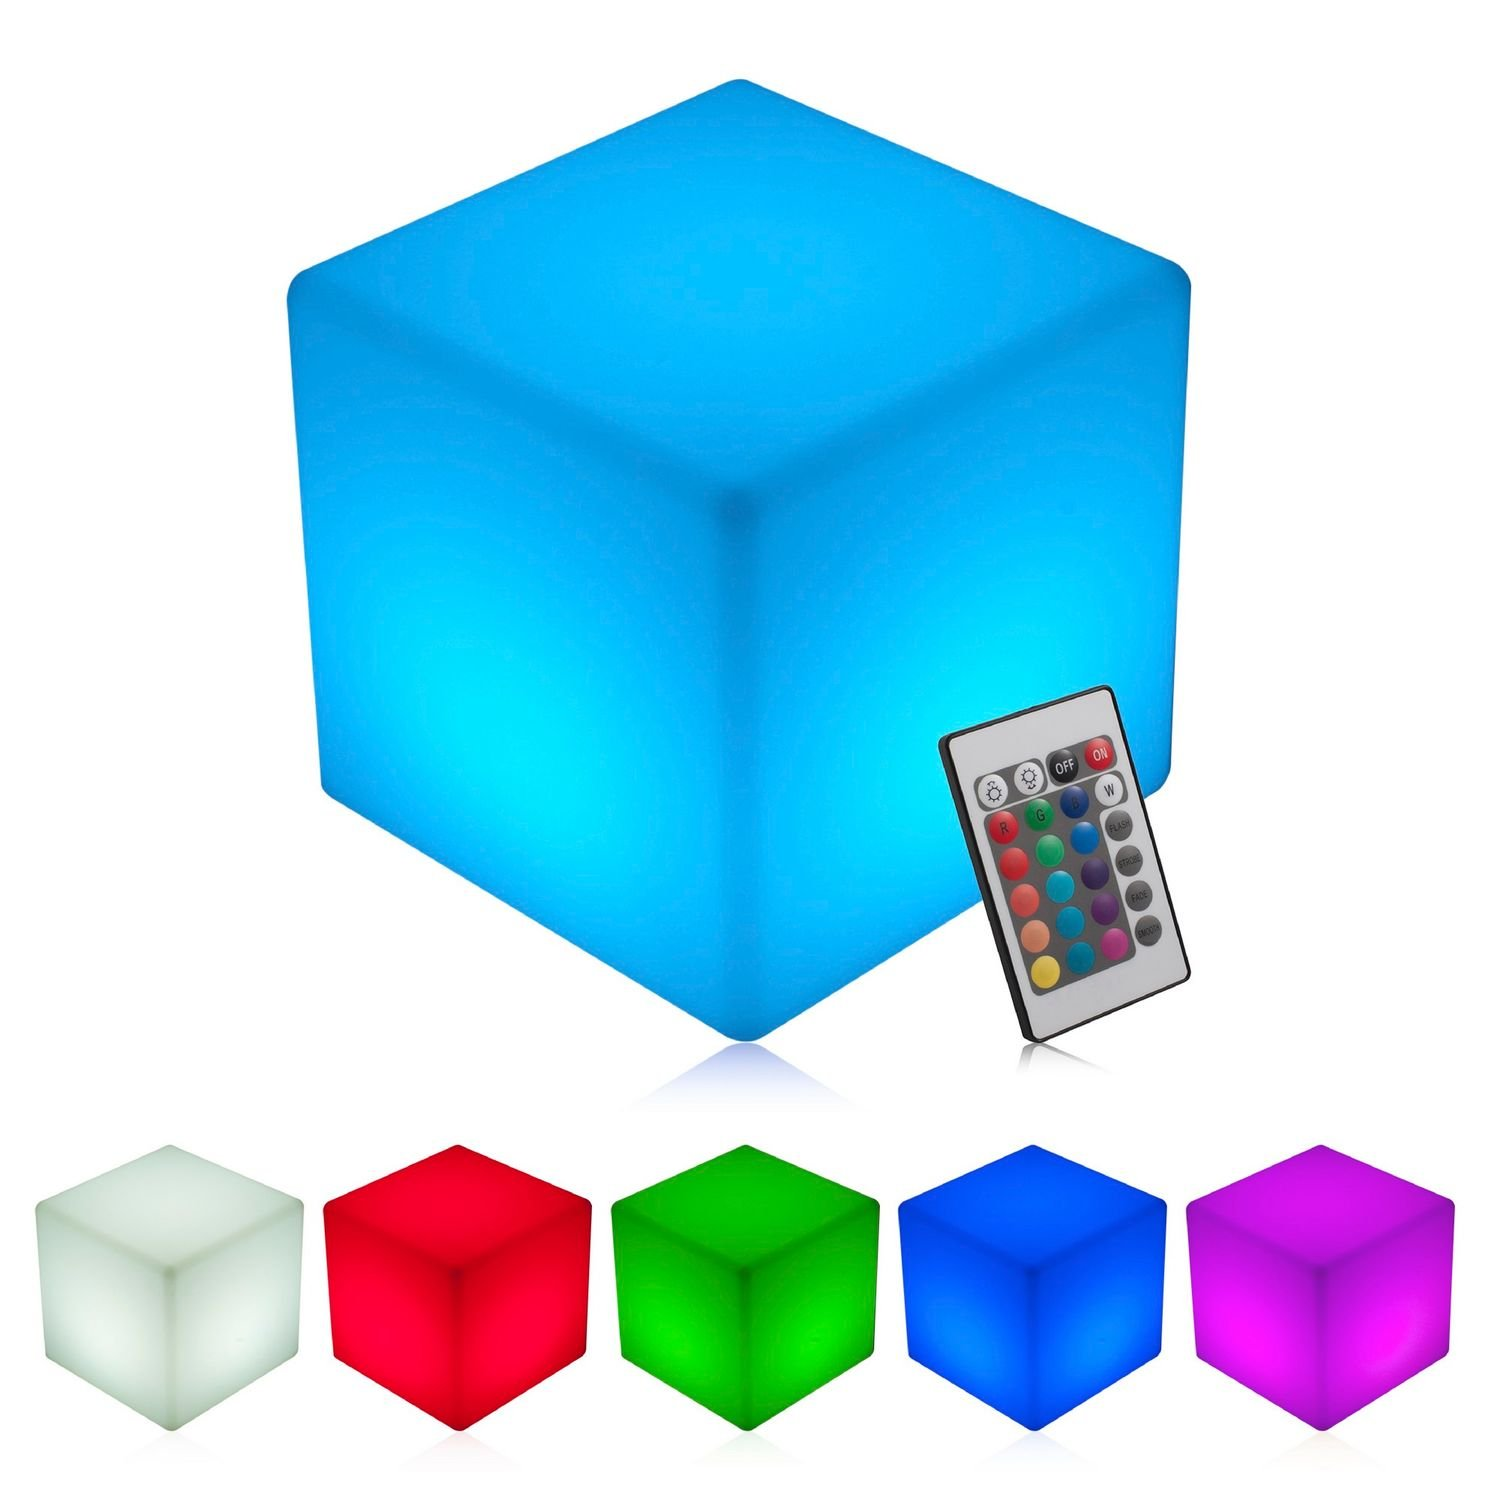 INNOKA 16-inch LED Cube Light, Waterproof & Cordless [Extra Large Glow Cube] Rechargeable, RGB Color Changing Table Chair for Pool Light, Outdoor, Home, Patio, Party, Mood Lamp, Decorative Lighting